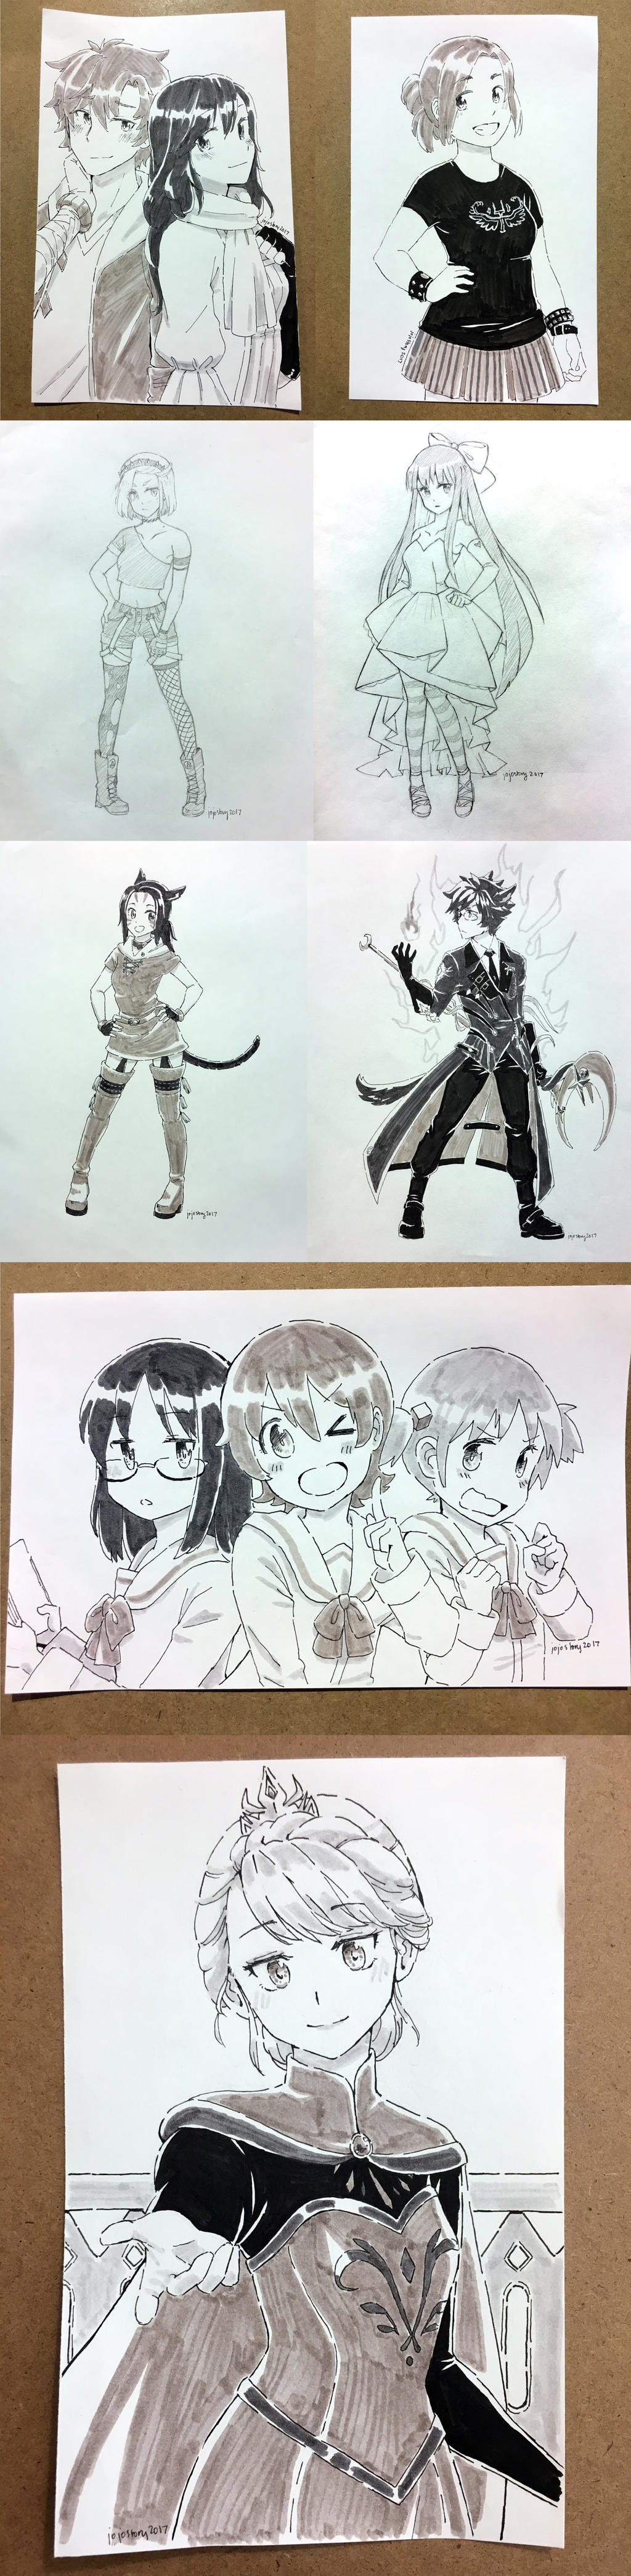 Anime Central 2017 Commissions